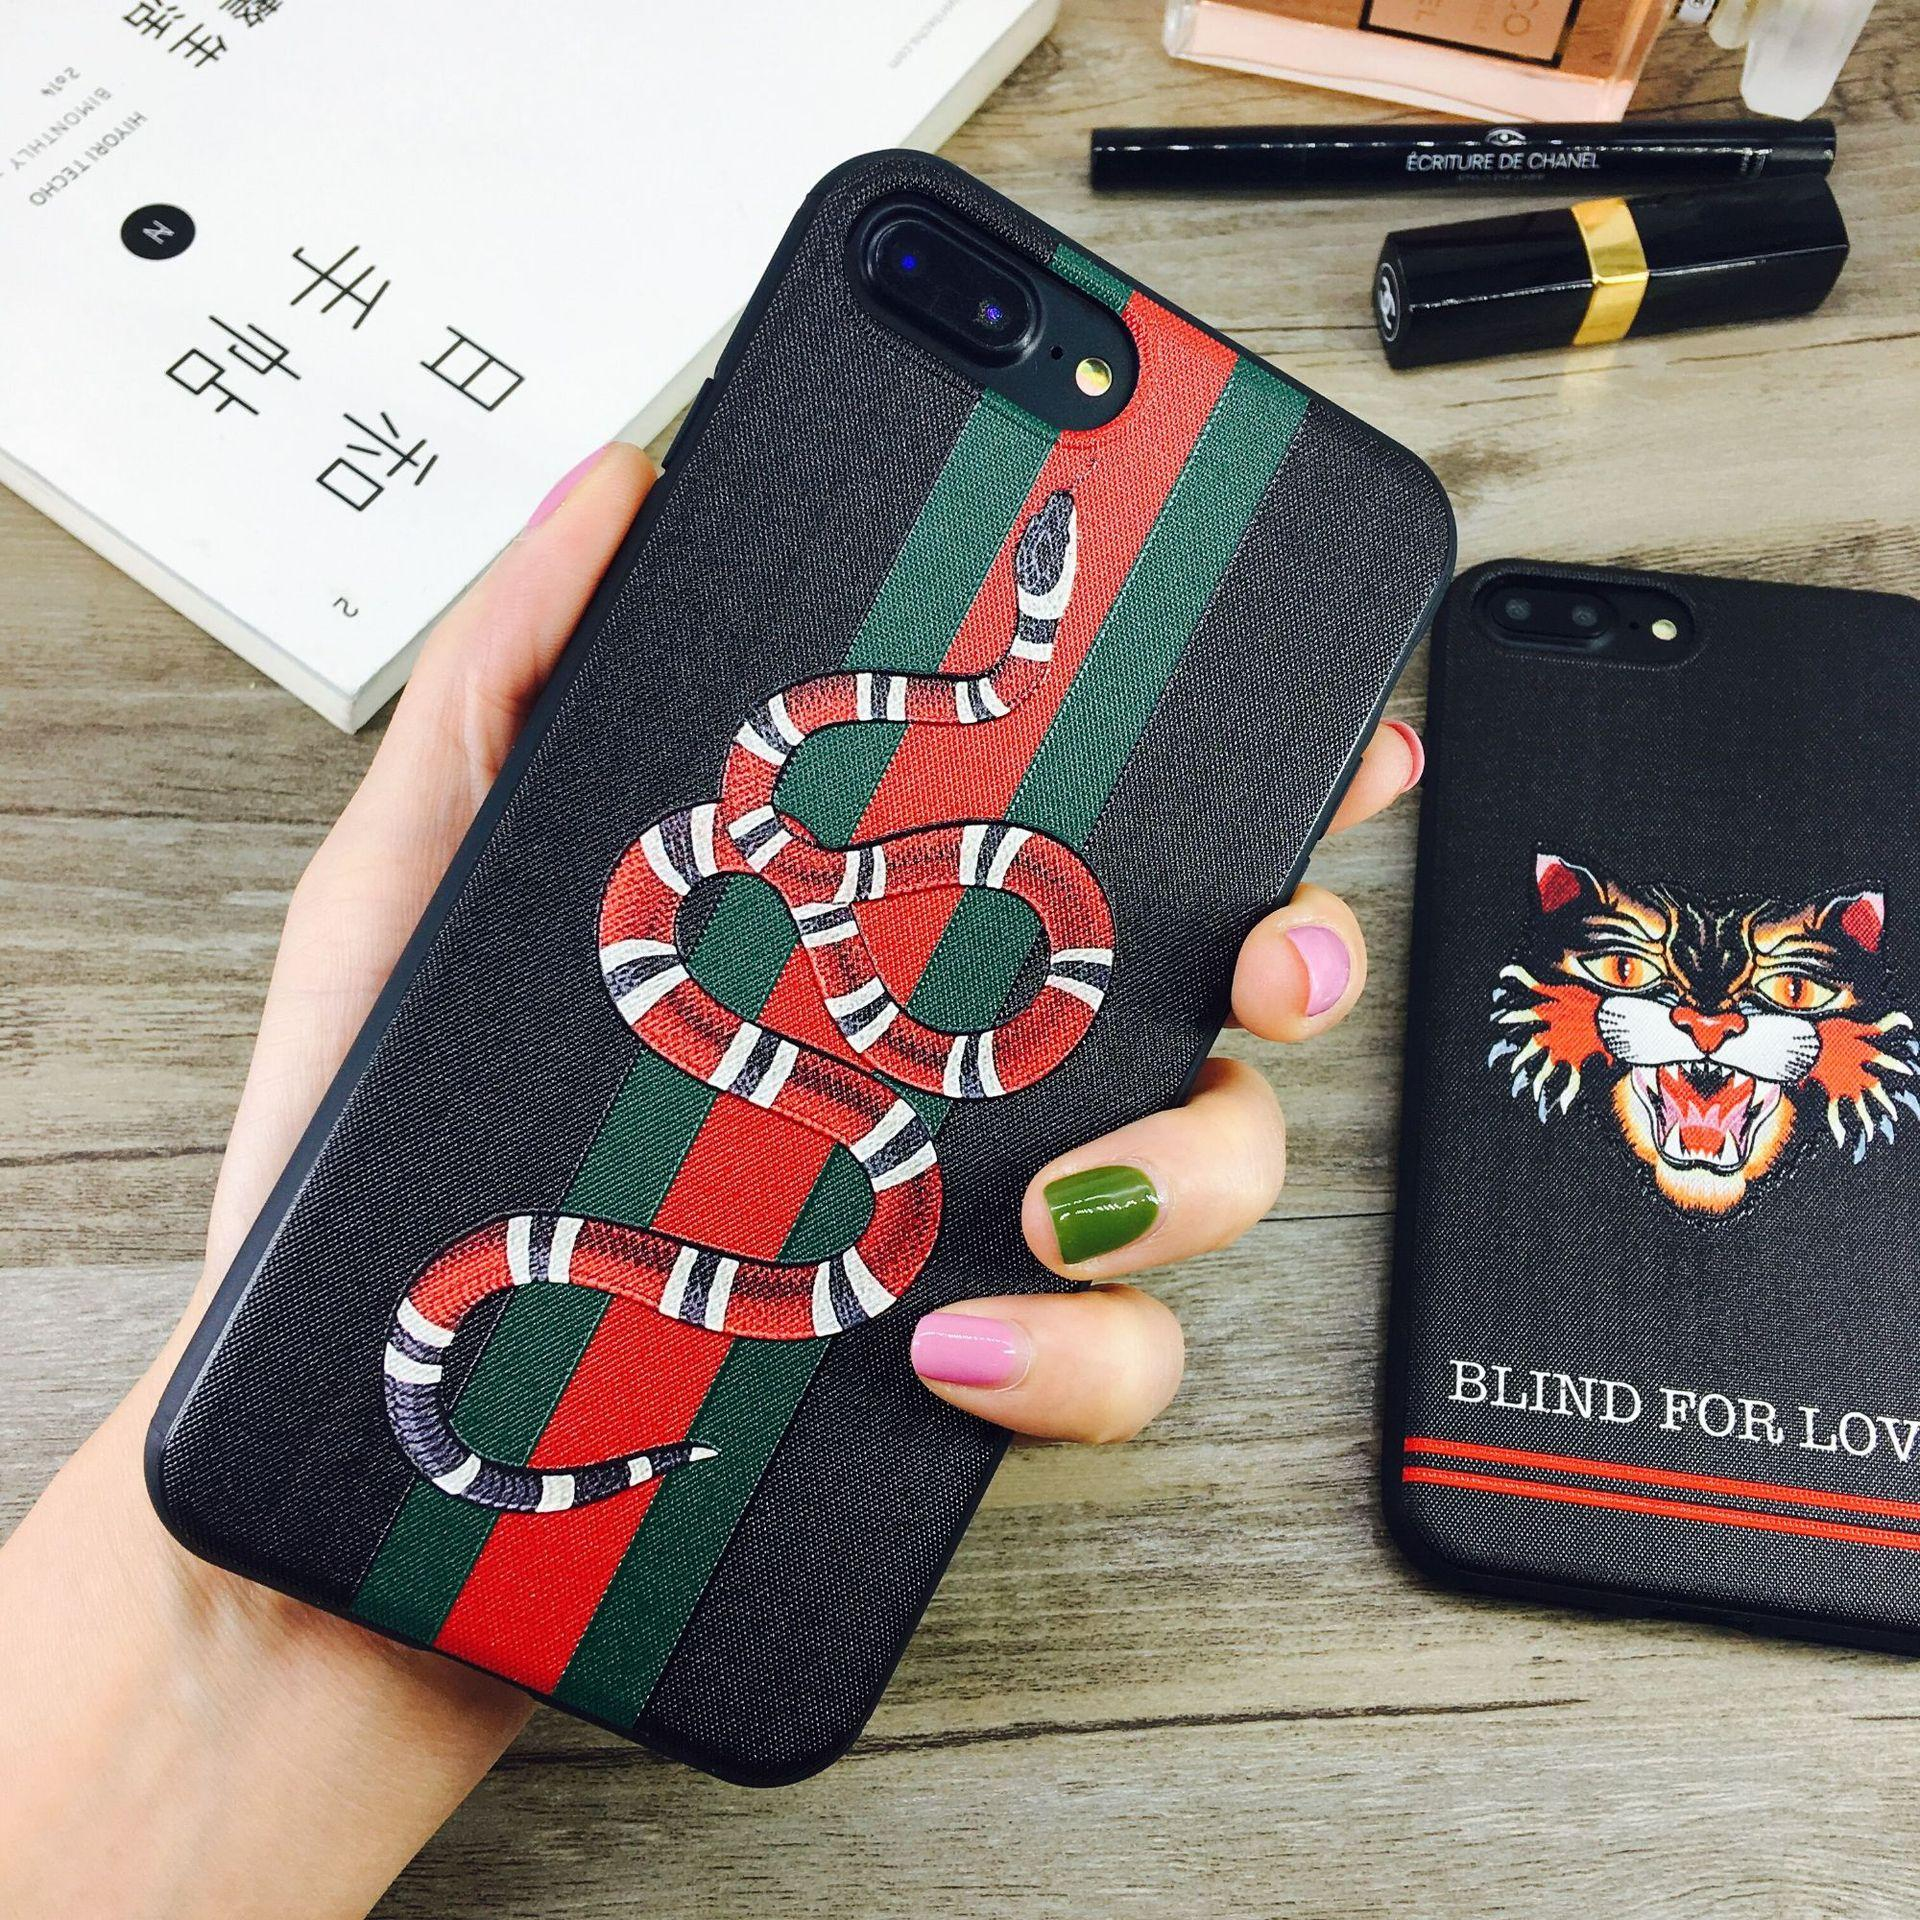 quality design ae5d7 2d7b8 Fashion Designer Phone Case for IPhone X 6/6S 6plus/6S Plus 7/8 7plus/8plus  Luxury Brand Case Back Cover Phone Case Protection